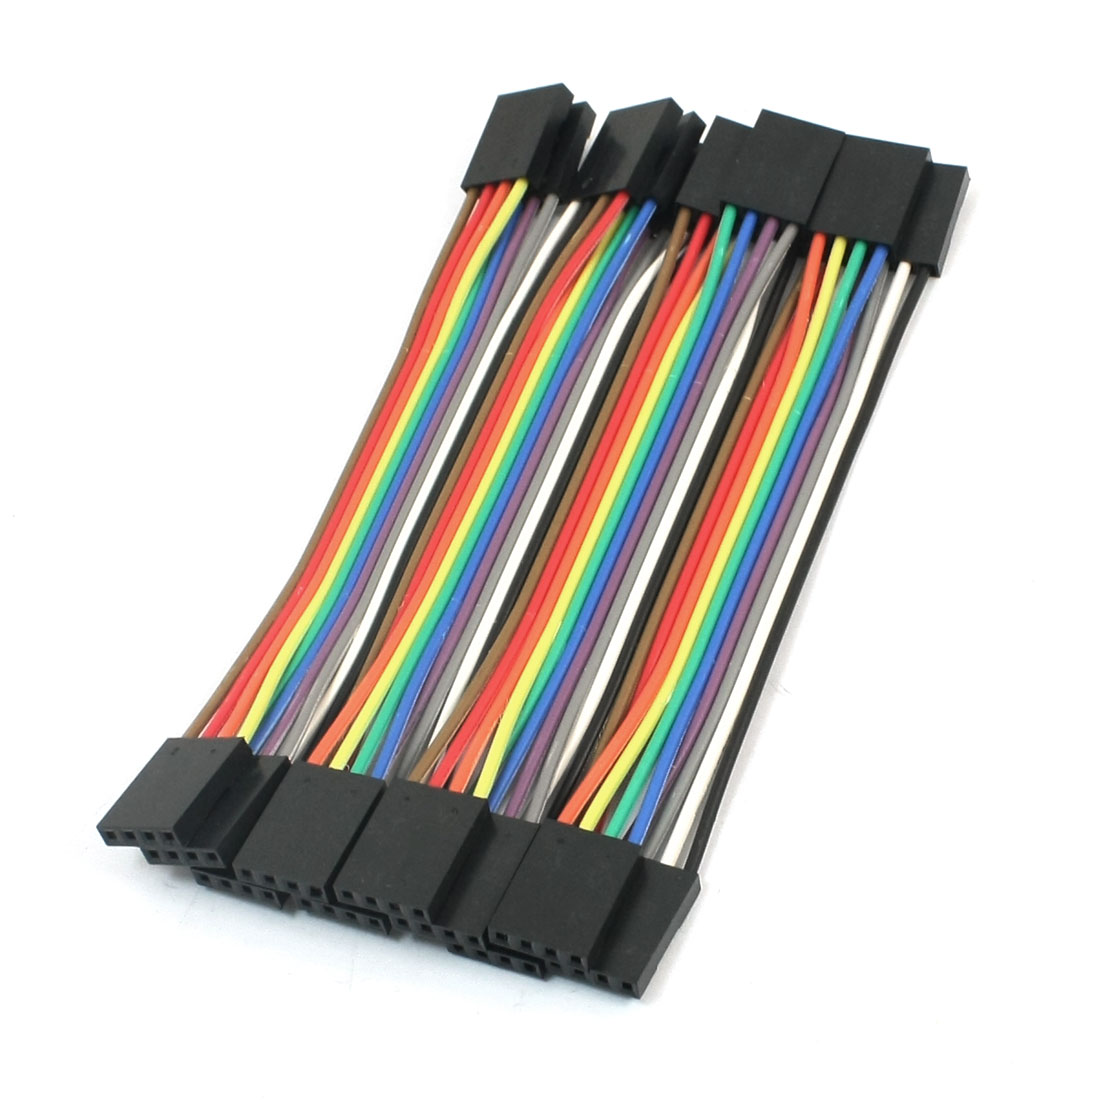 10pcs 2.54mm Pitch 4Pin-4Pin F/F Solderless Jumper Cable Wire Connector 10cm